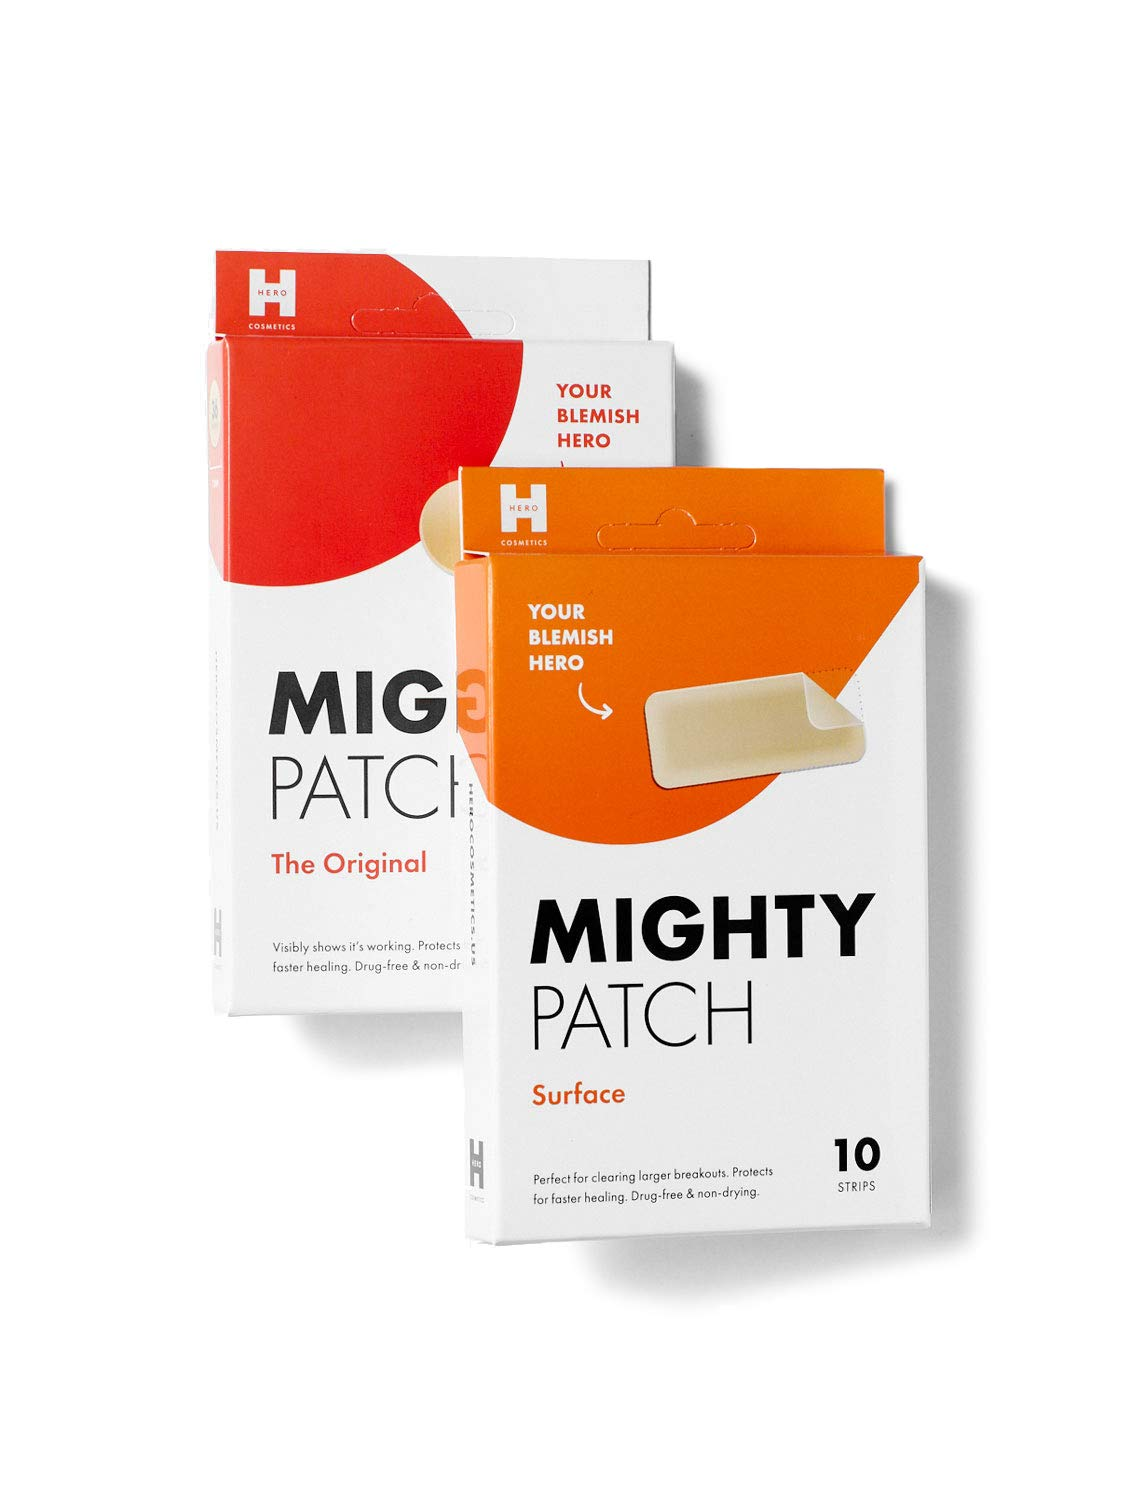 Mighty Patch Original & Surface Bundle - Acne Patches for Small and Large Treatment of Pimples. Clean, Vegan-Friendly, Cruelty-Free